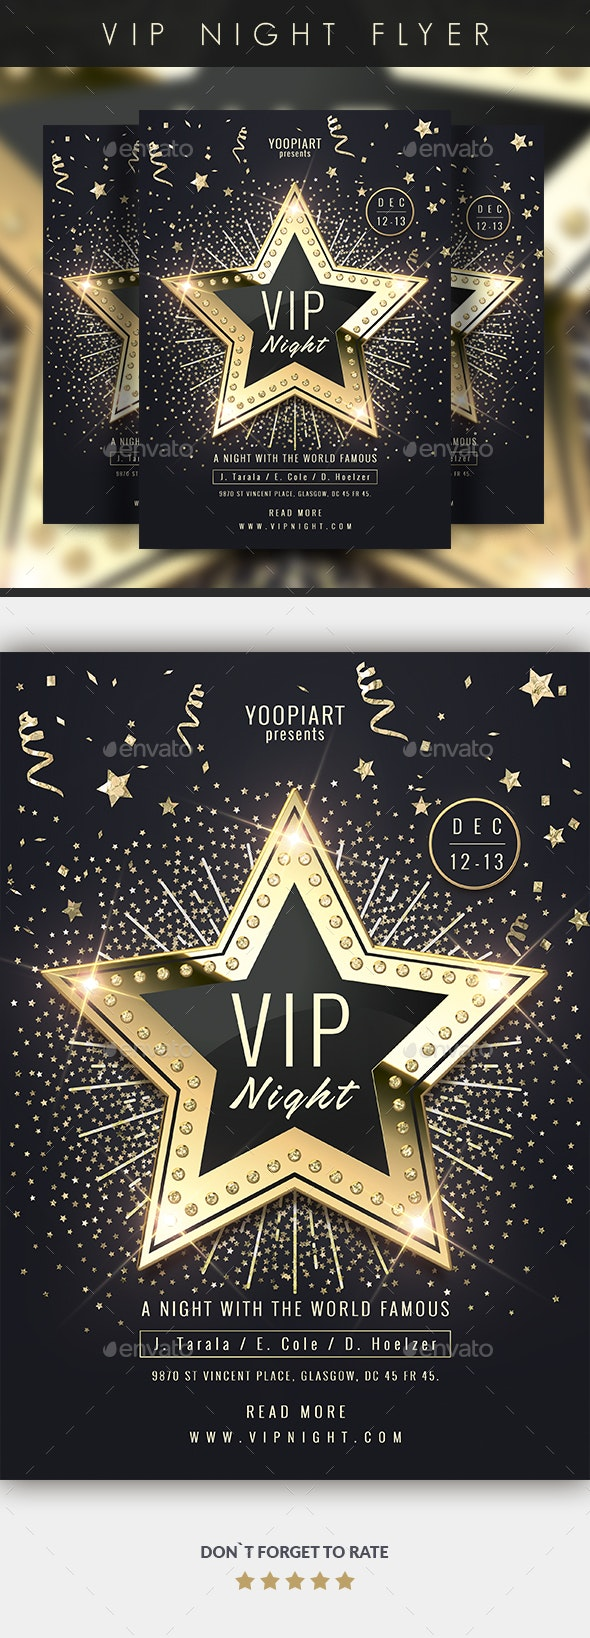 Vip Night Flyer - Events Flyers